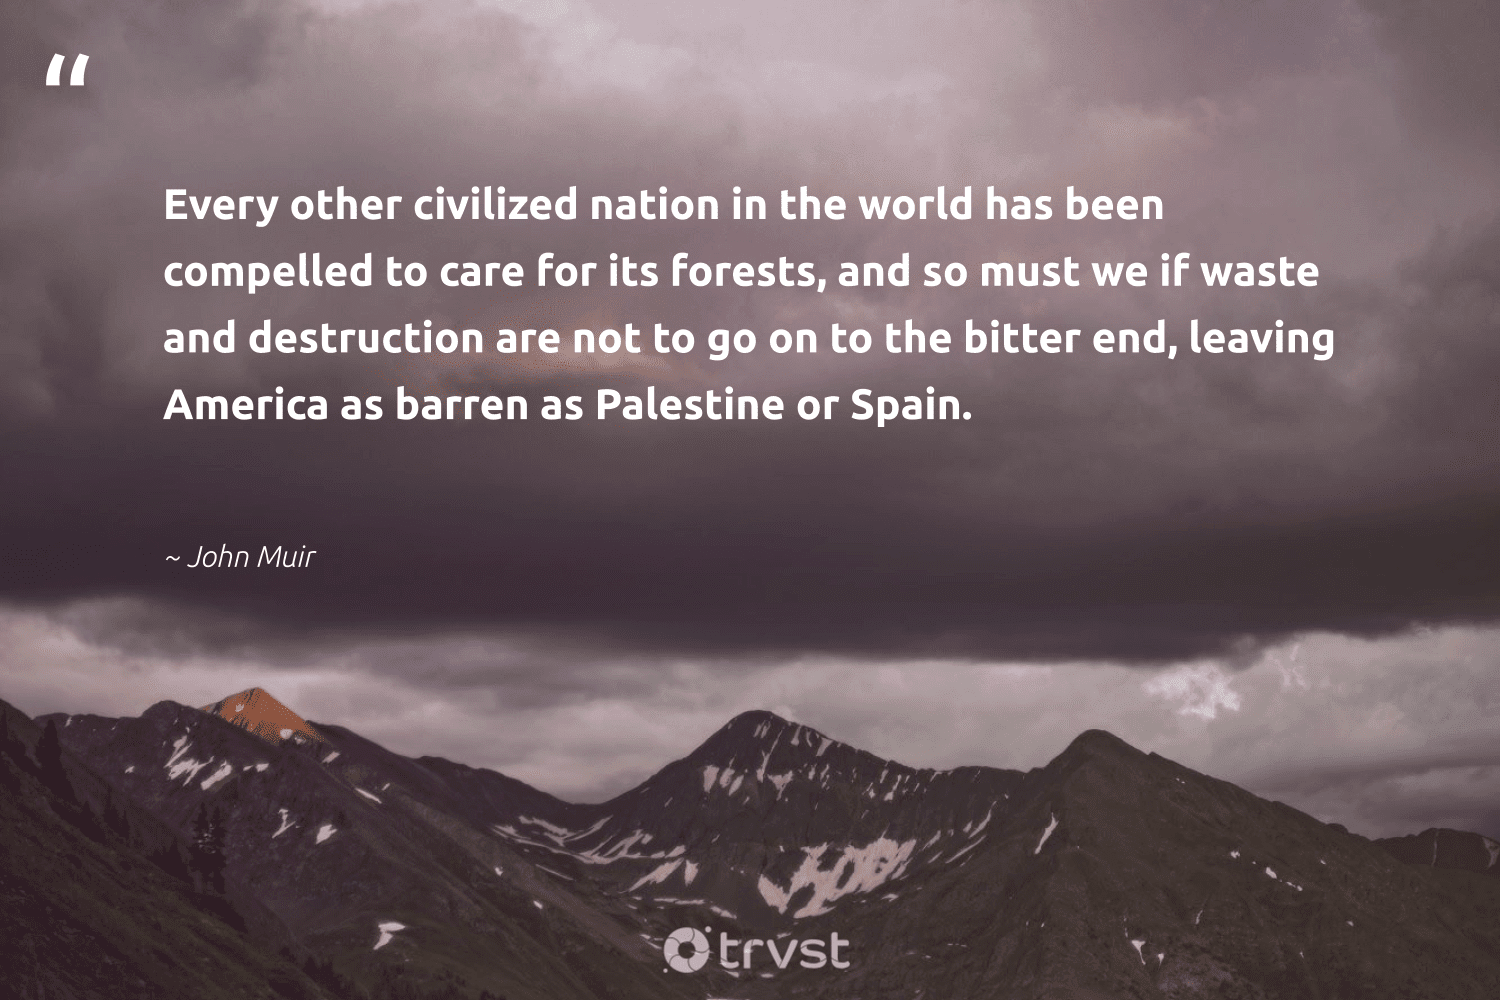 """Every other civilized nation in the world has been compelled to care for its forests, and so must we if waste and destruction are not to go on to the bitter end, leaving America as barren as Palestine or Spain.""  - John Muir #trvst #quotes #waste #sustainability #dogood #wildernessnation #collectiveaction #noplanetb #beinspired #natureseekers #bethechange #green"